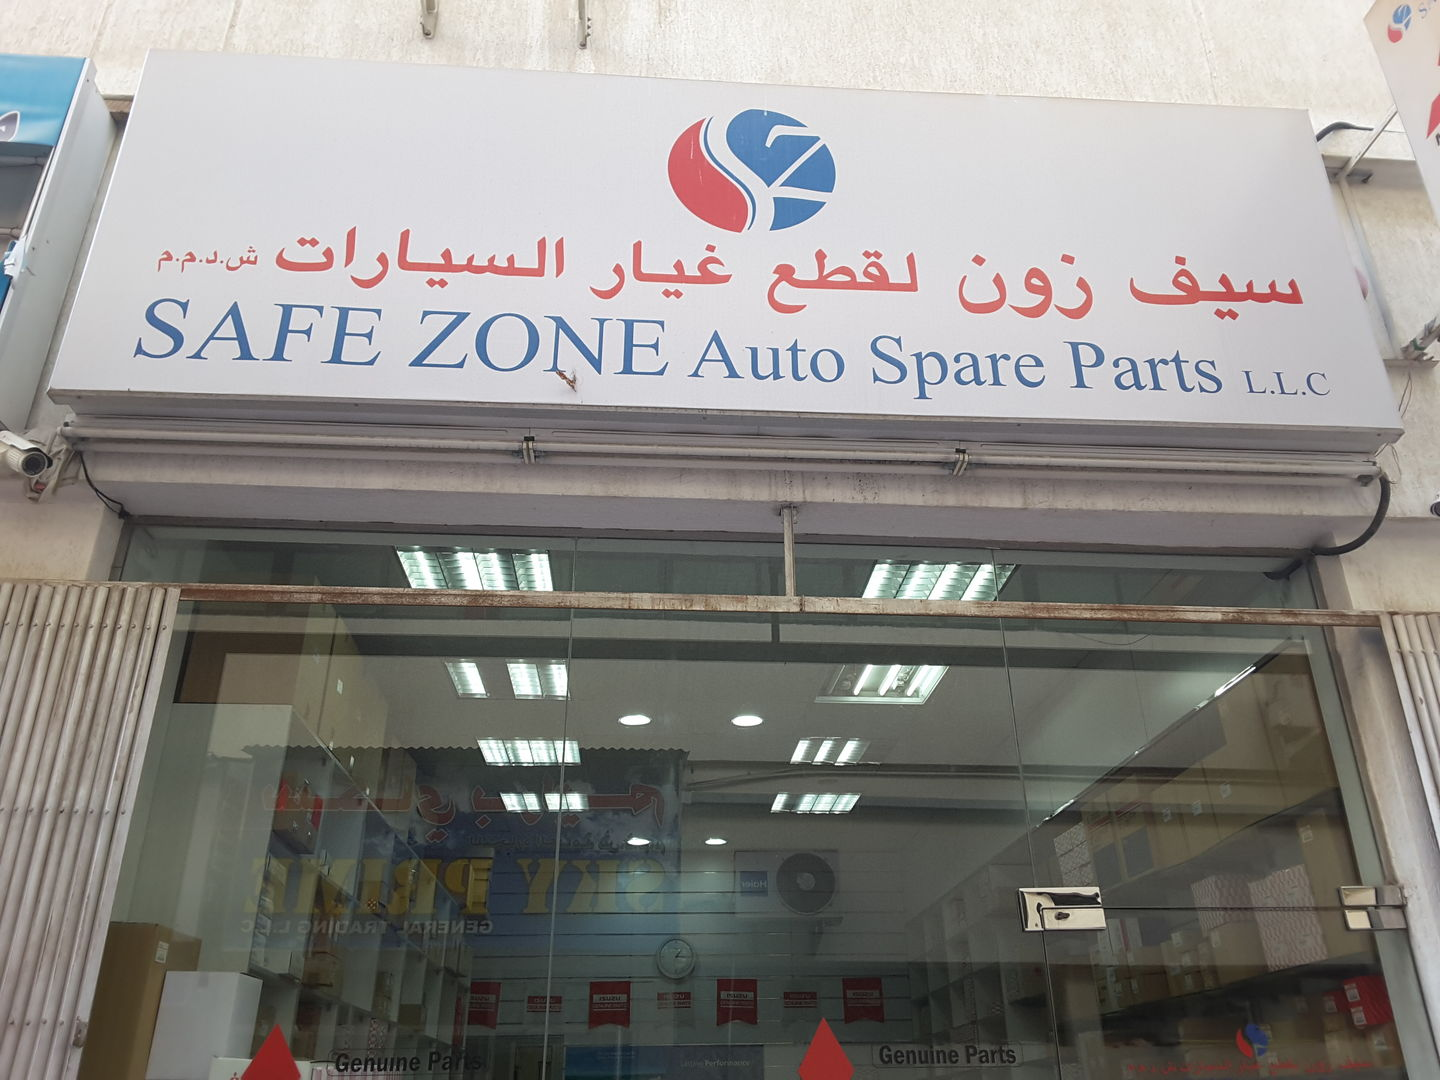 HiDubai-business-safe-zone-auto-spare-parts-transport-vehicle-services-auto-spare-parts-accessories-naif-dubai